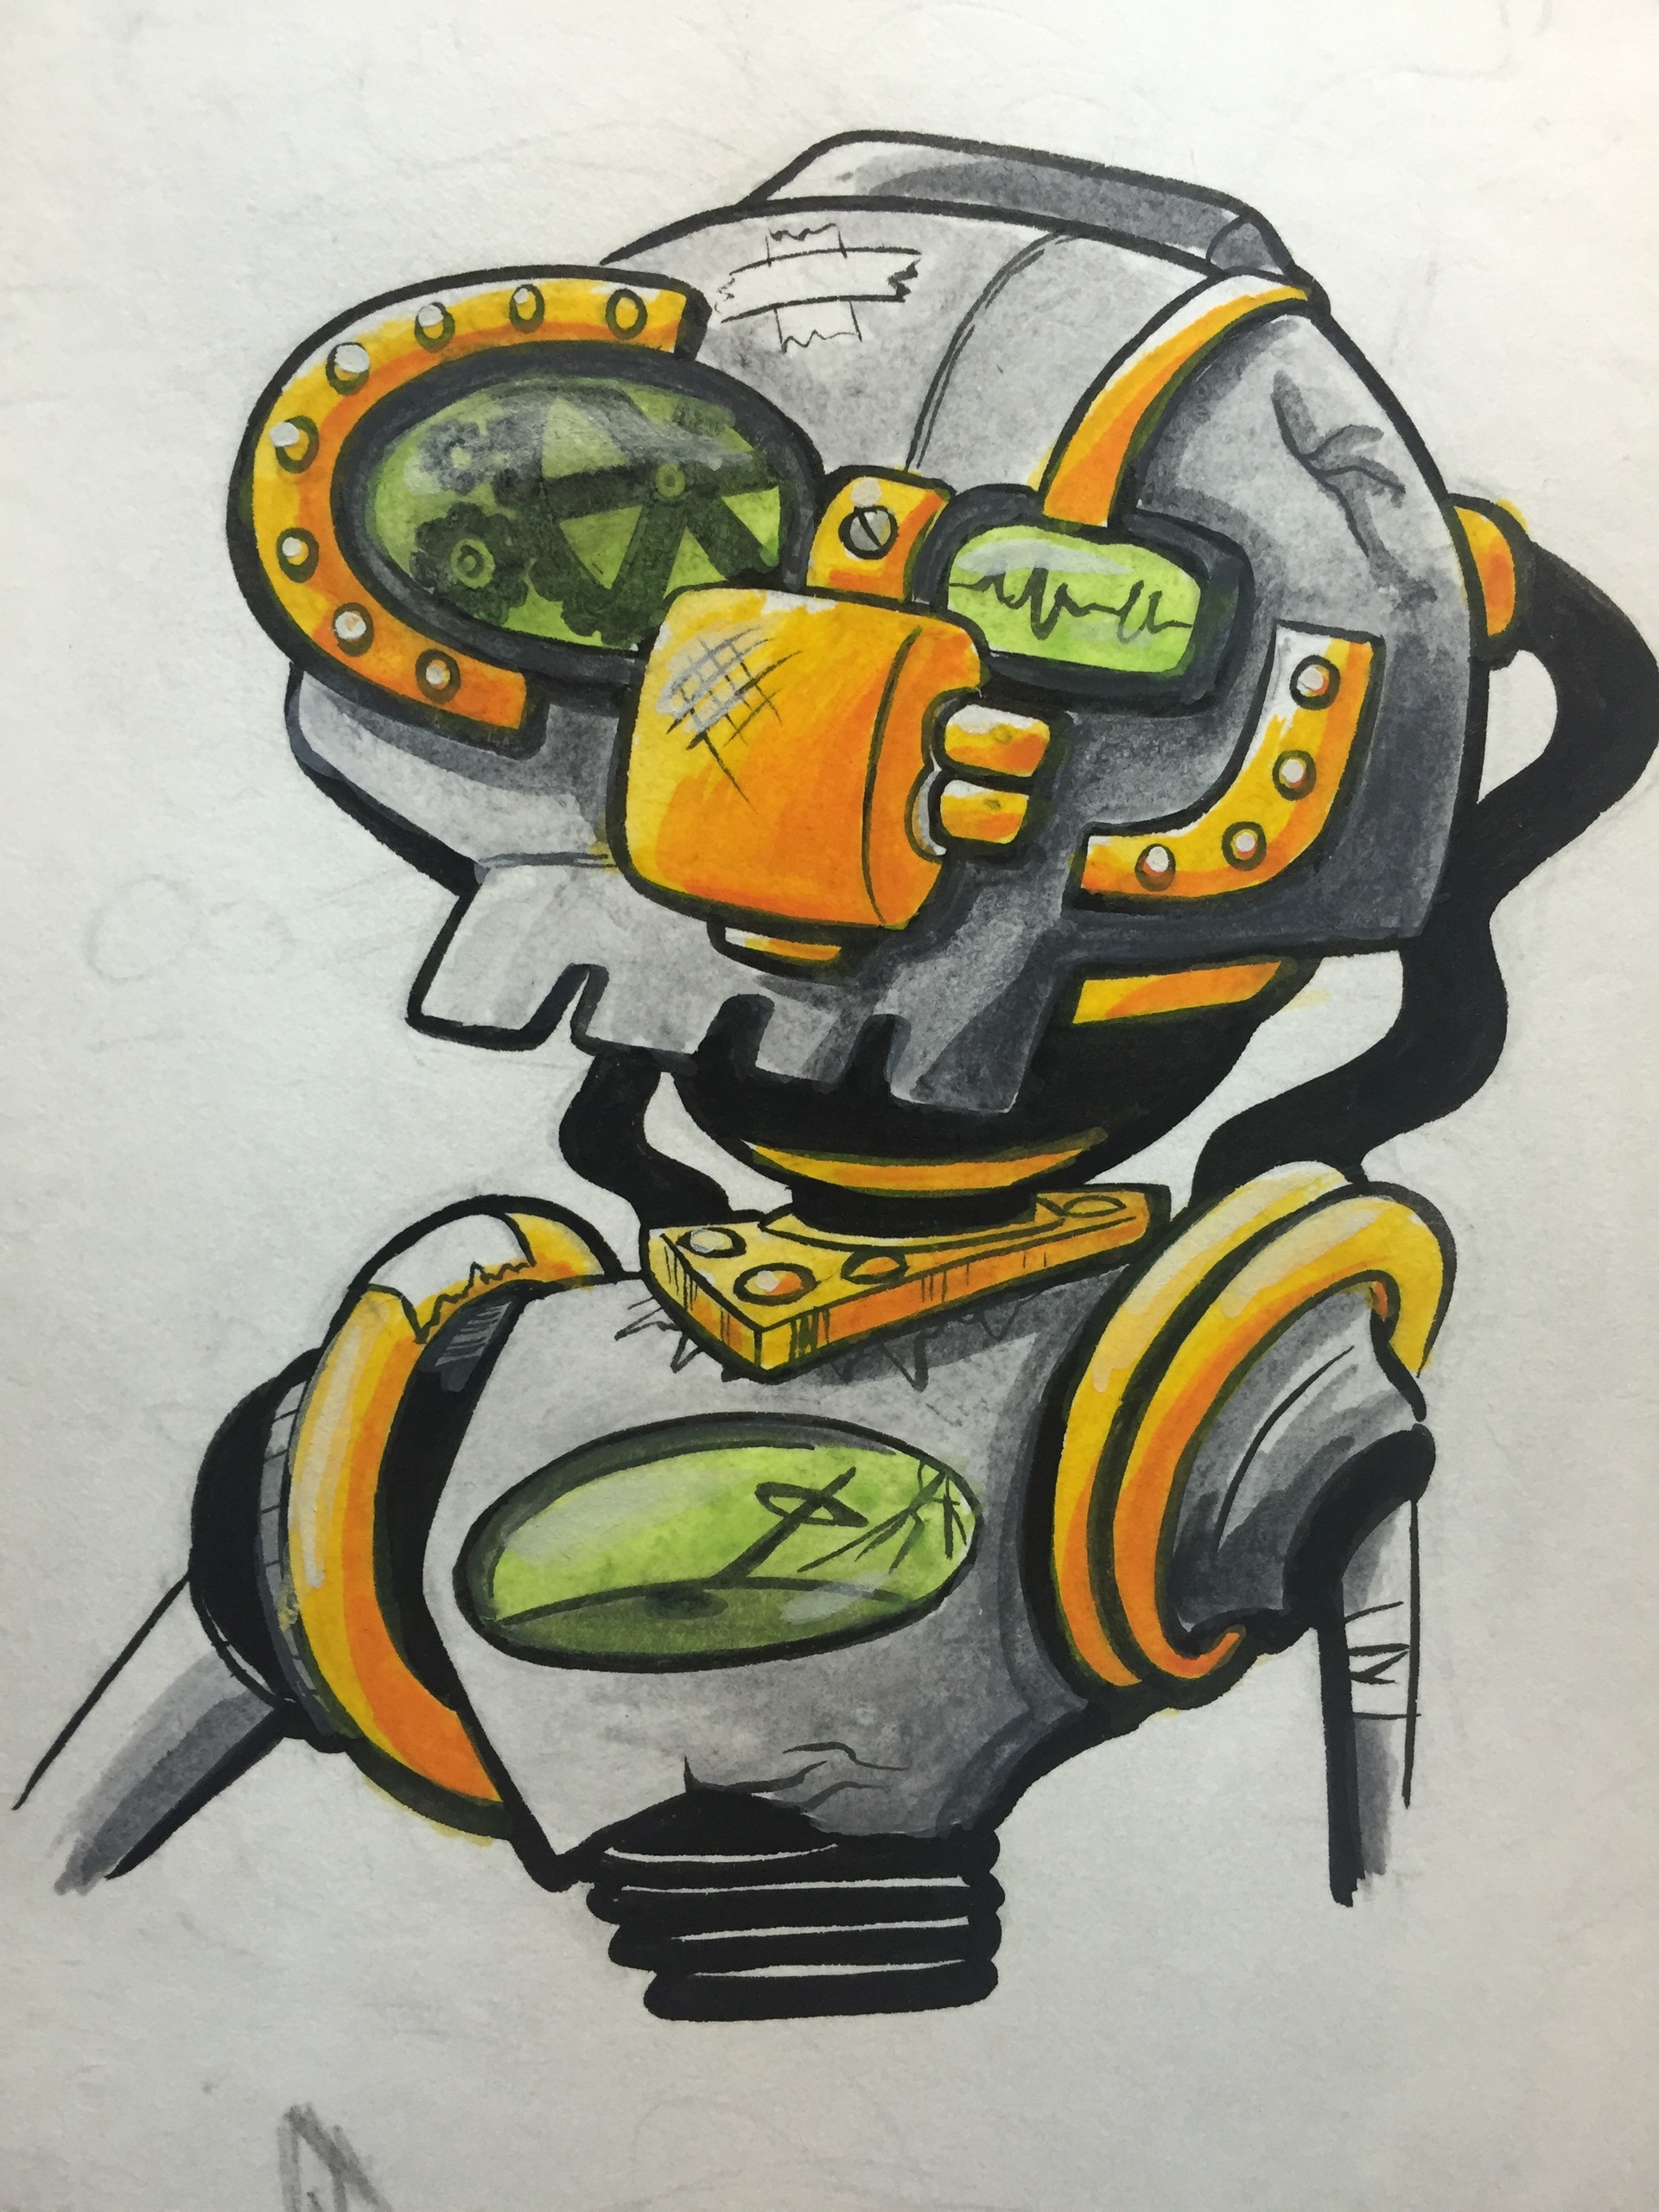 A busted robot bust.